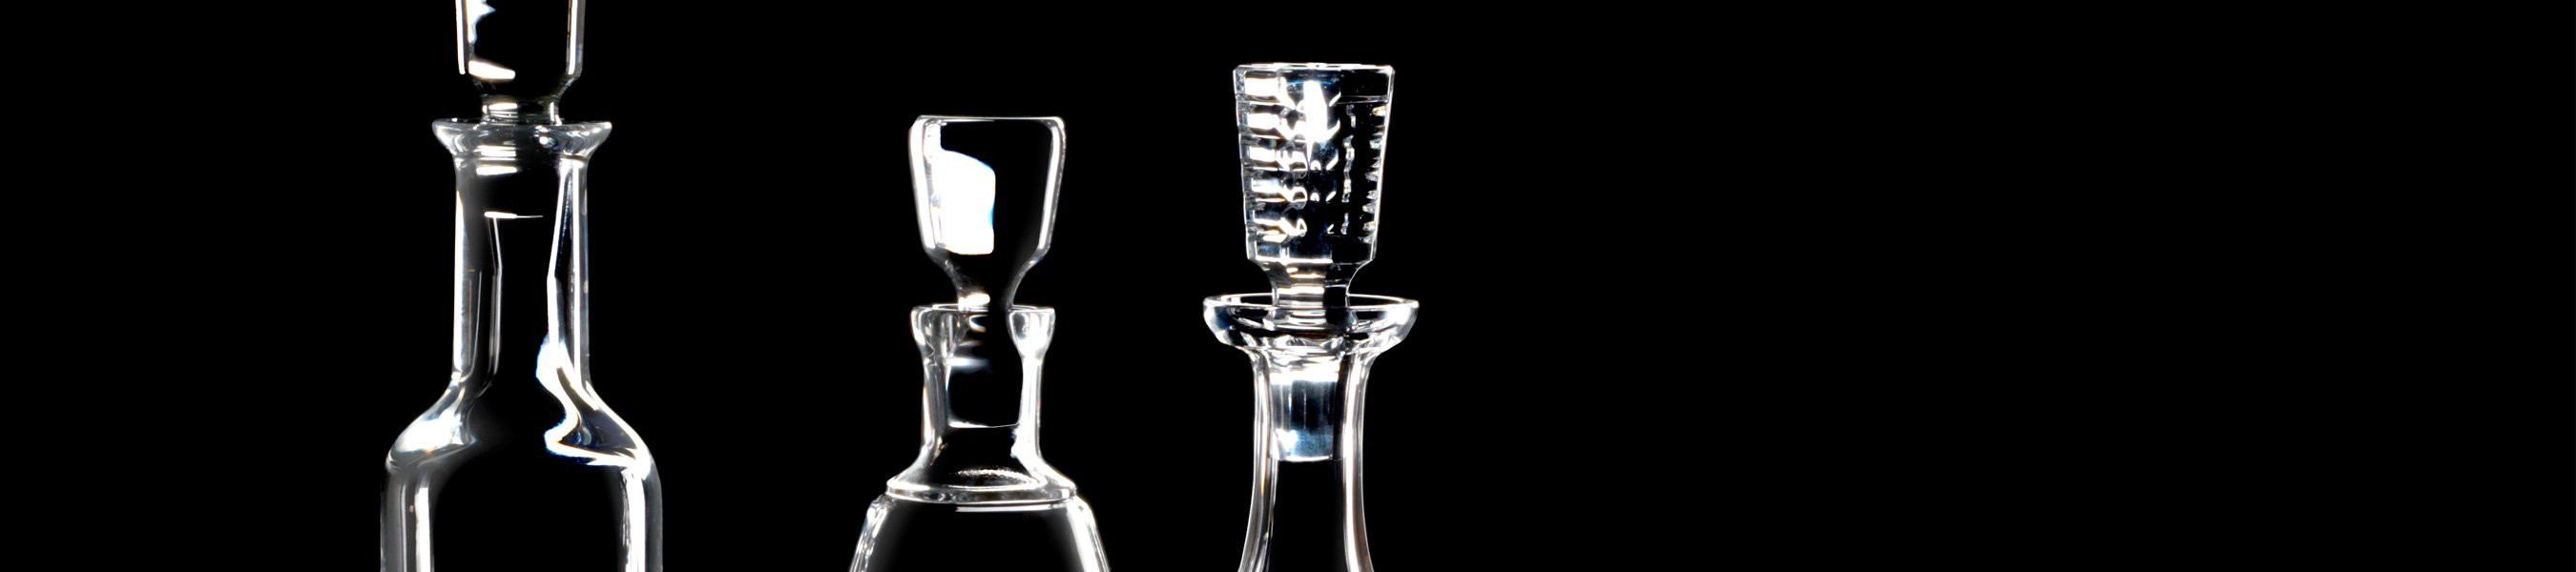 10 inch waterford crystal vase of crystal decanters pitchers carafes waterforda us throughout waterford crystal decanters pitchers carafes